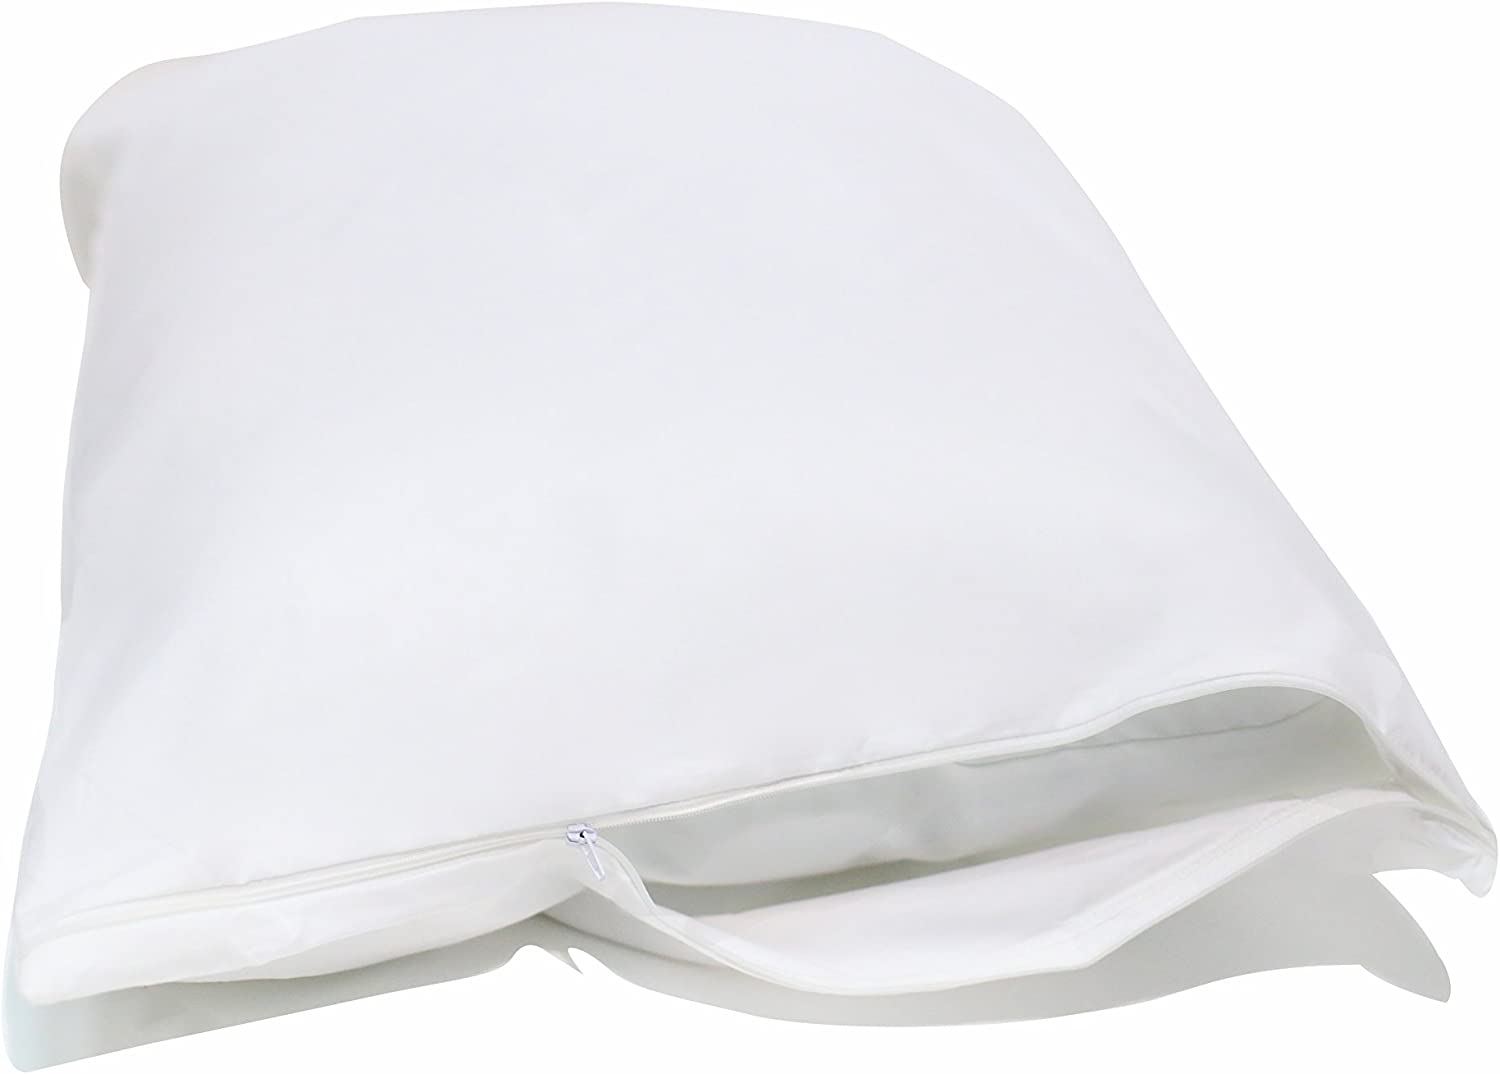 National Allergy Queen 3 Pack Allergy and Bed Bug Proof Pillow Cover, White